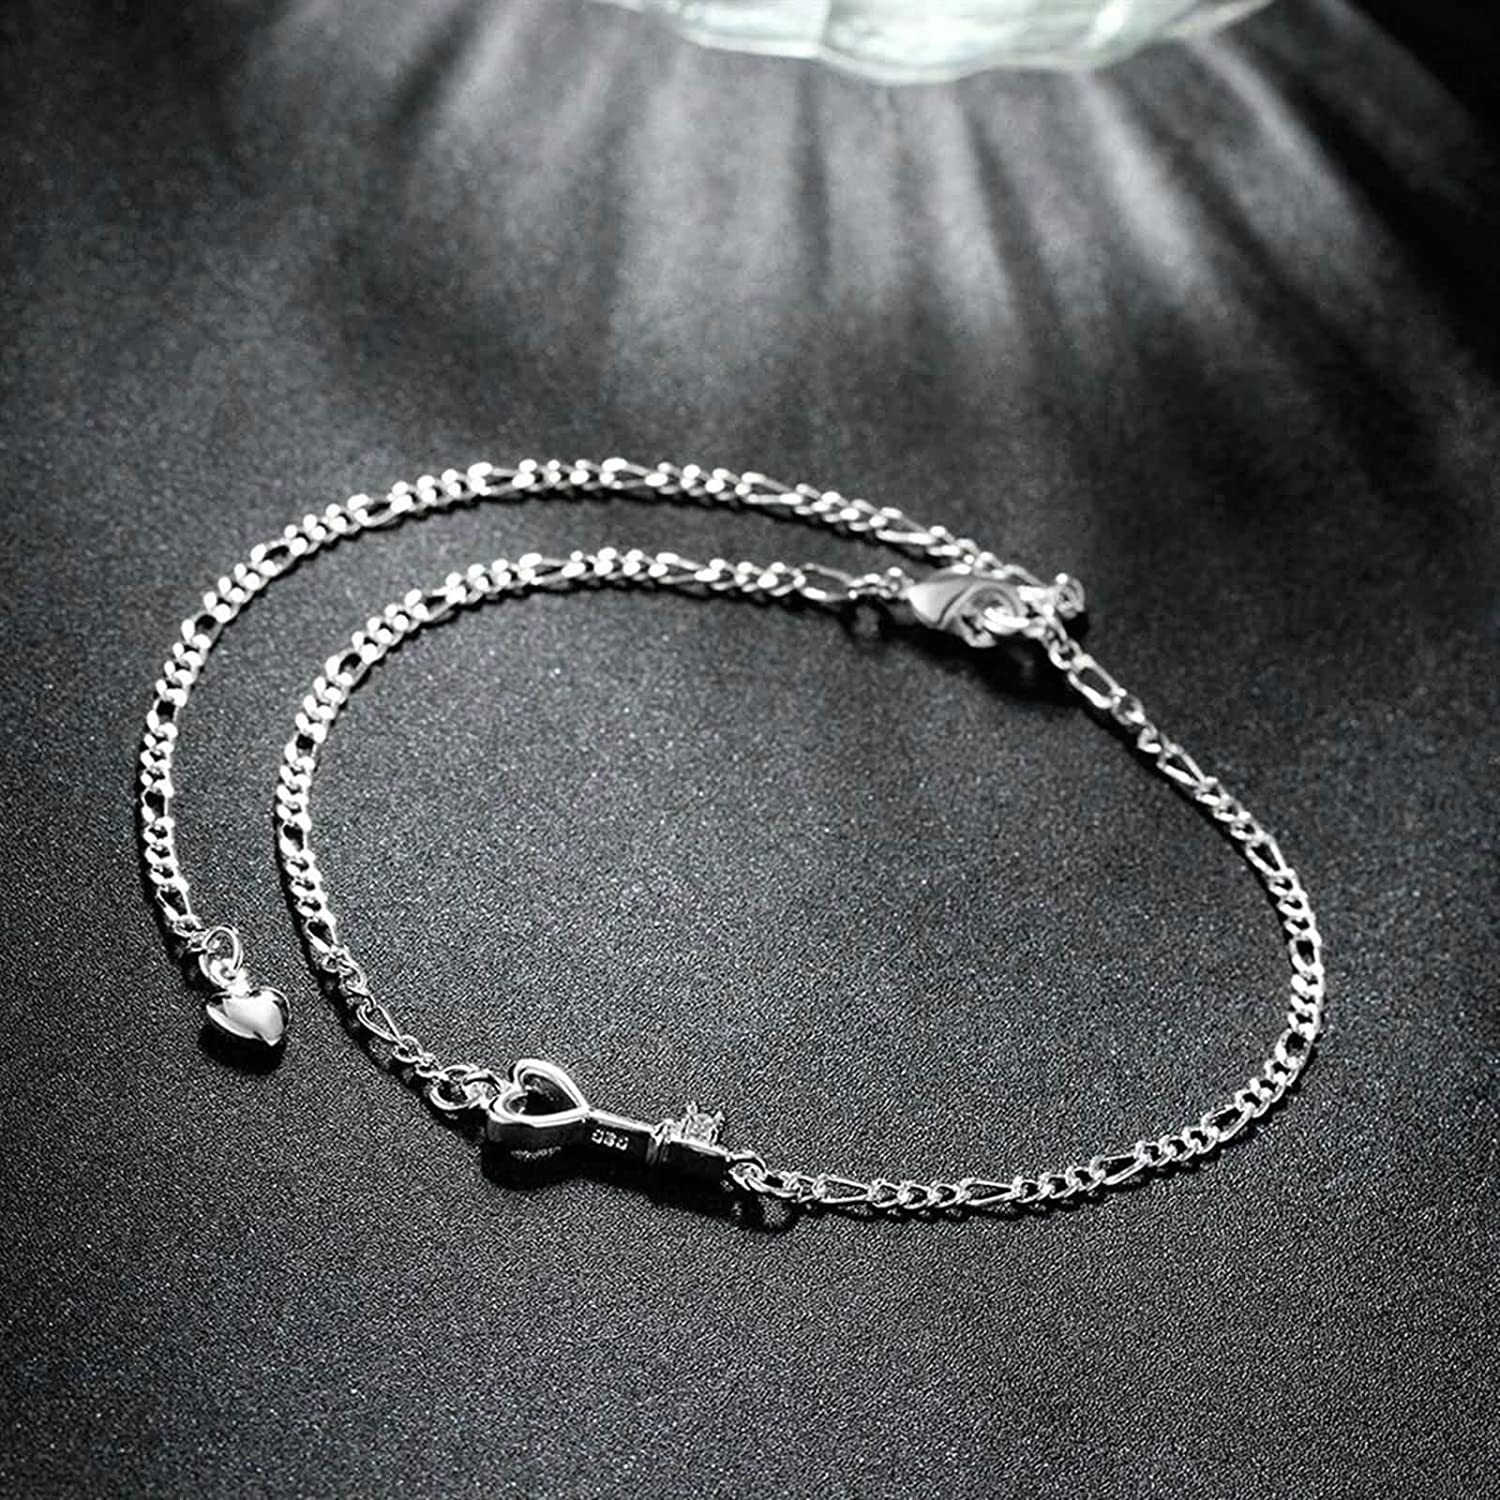 Aooaz Jewelry Anklets for Women Teens Hollow Heart Key Beach Jewelry Bohemian Anklet Silver